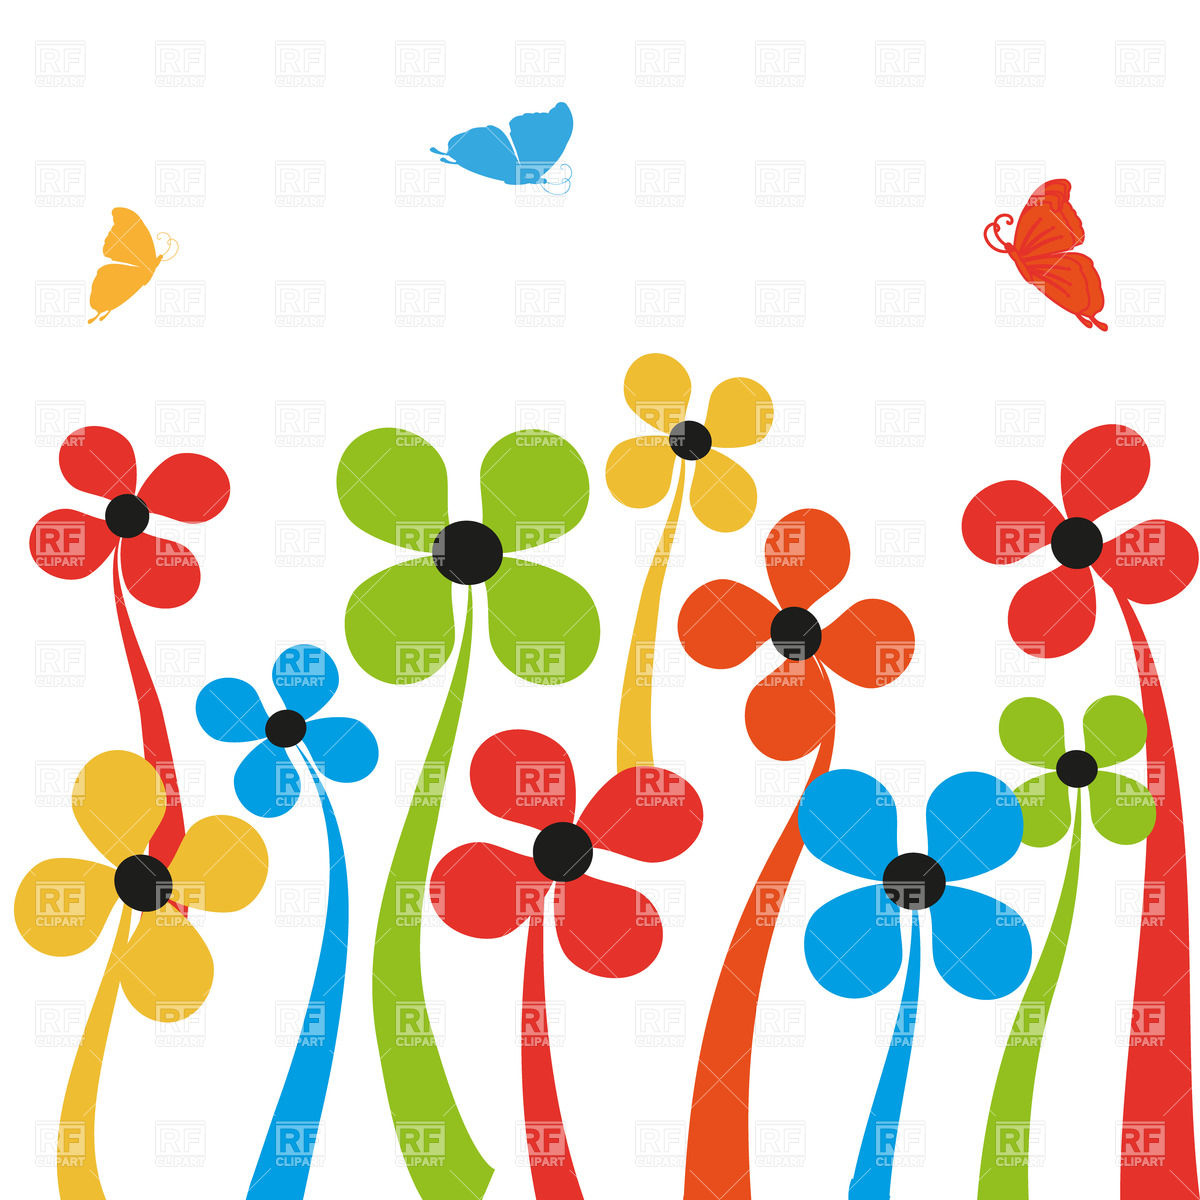 Free cartoon pictures of flowers svg freeuse download Colorful simplistic cartoon flowers and butterflies Vector Image ... svg freeuse download